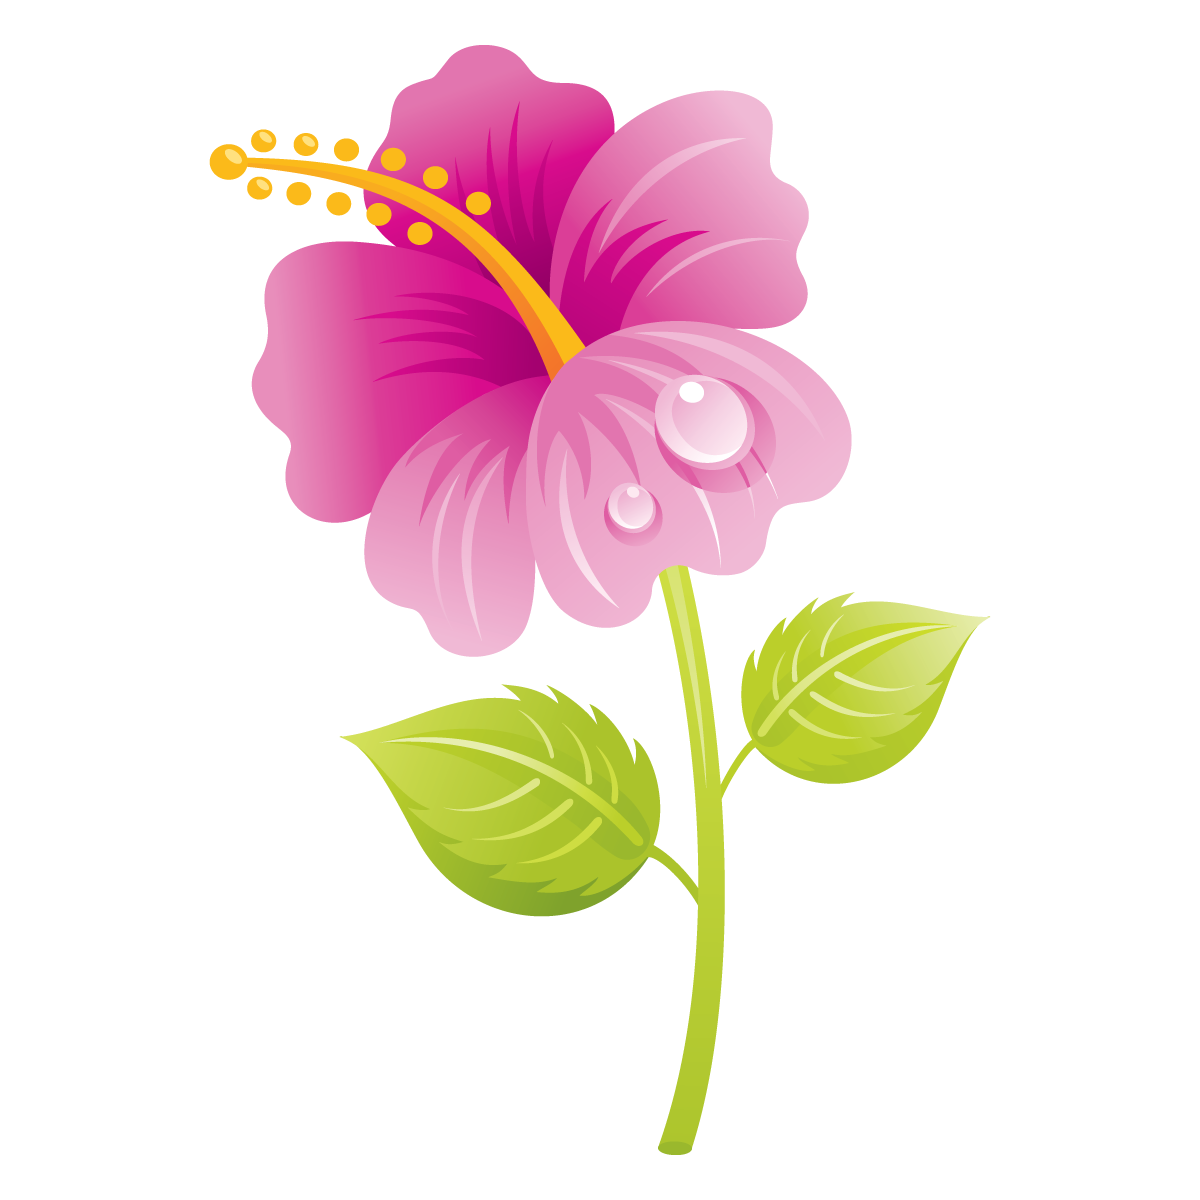 Mothers Day Flowers Clipart Free Large Images Flower Art Free Clip Art Clip Art